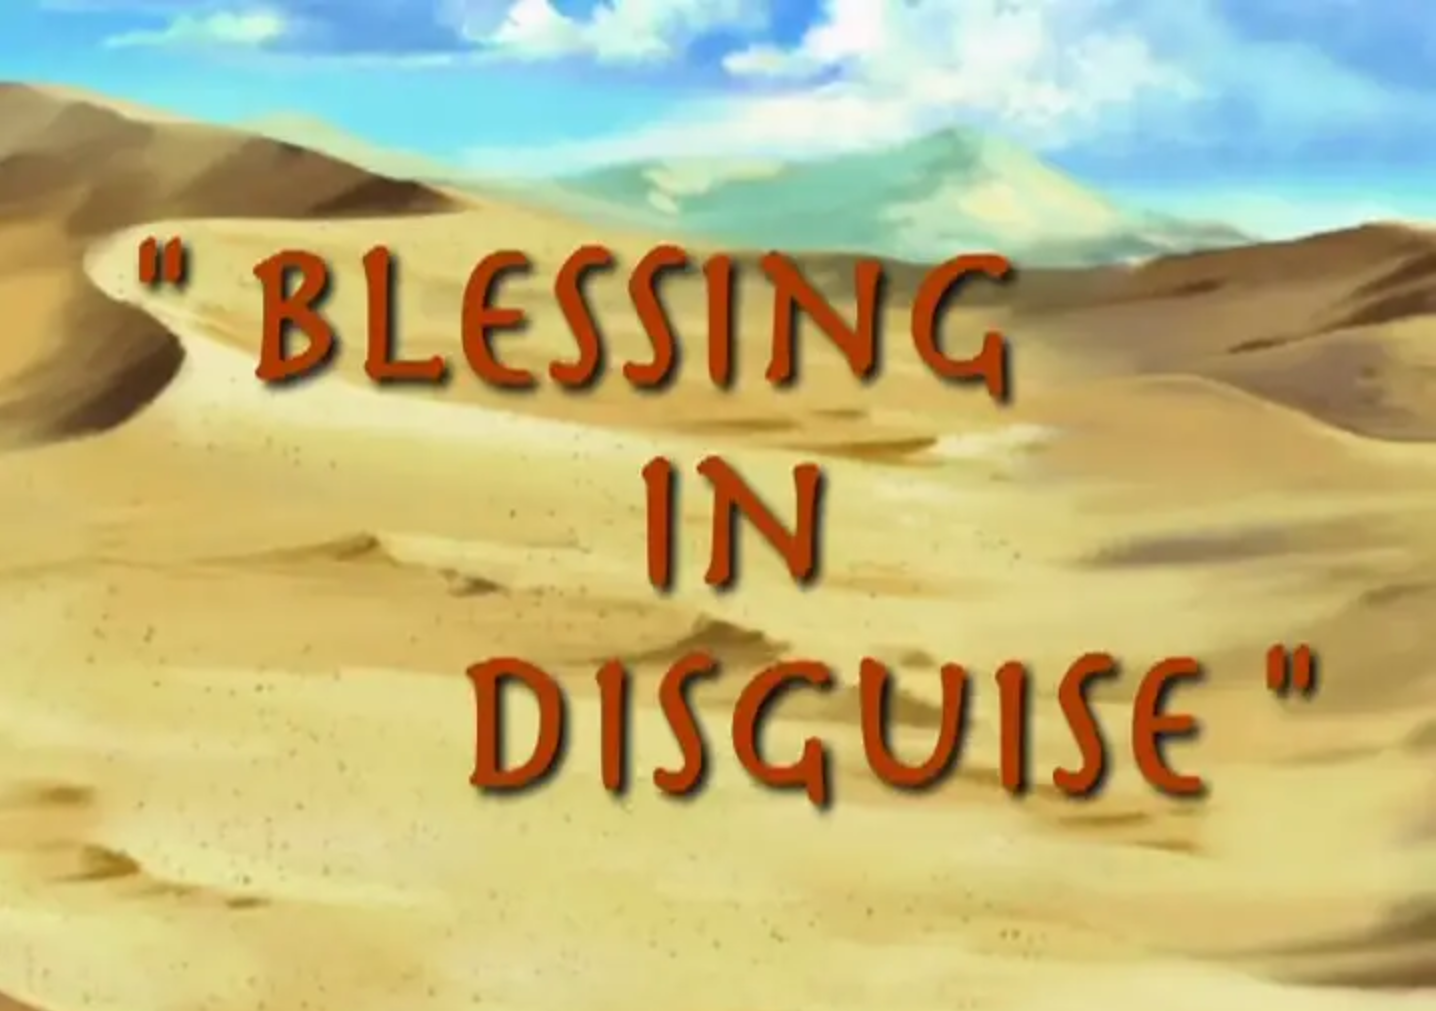 Bugtime Adventures - Blessing in Disguise - The Joseph Story